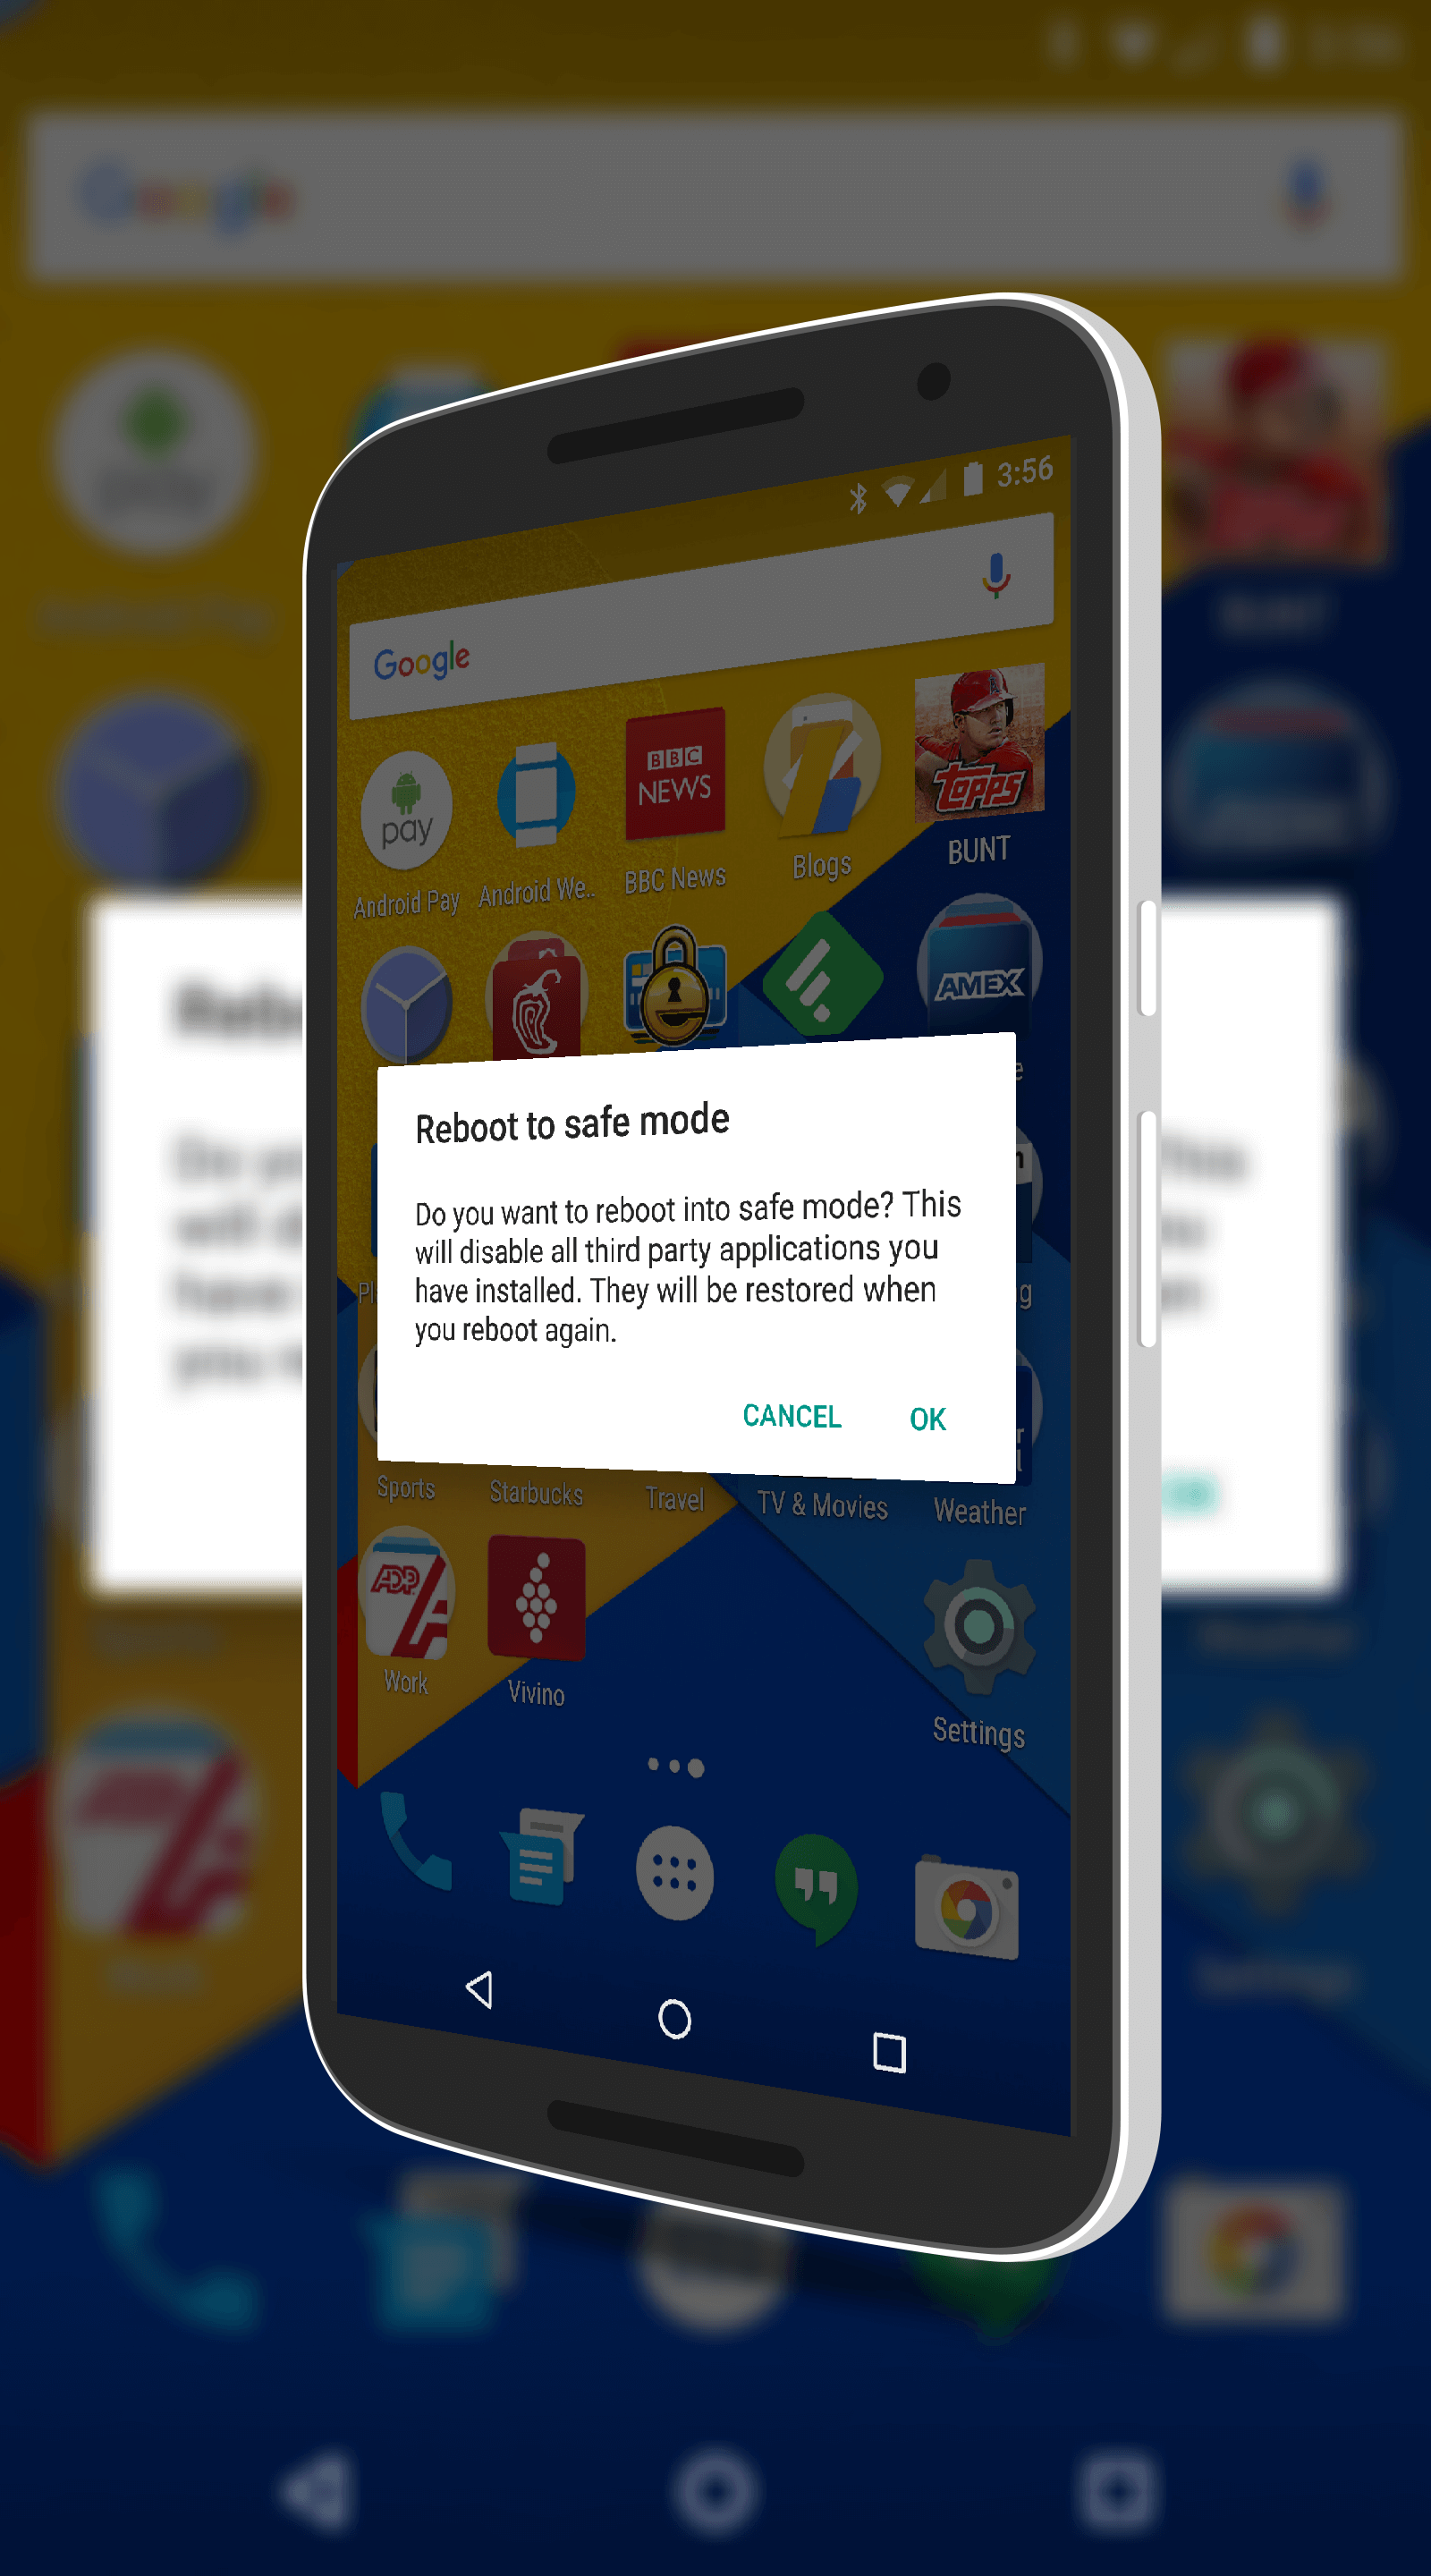 Rebooting Android into Safe Mode